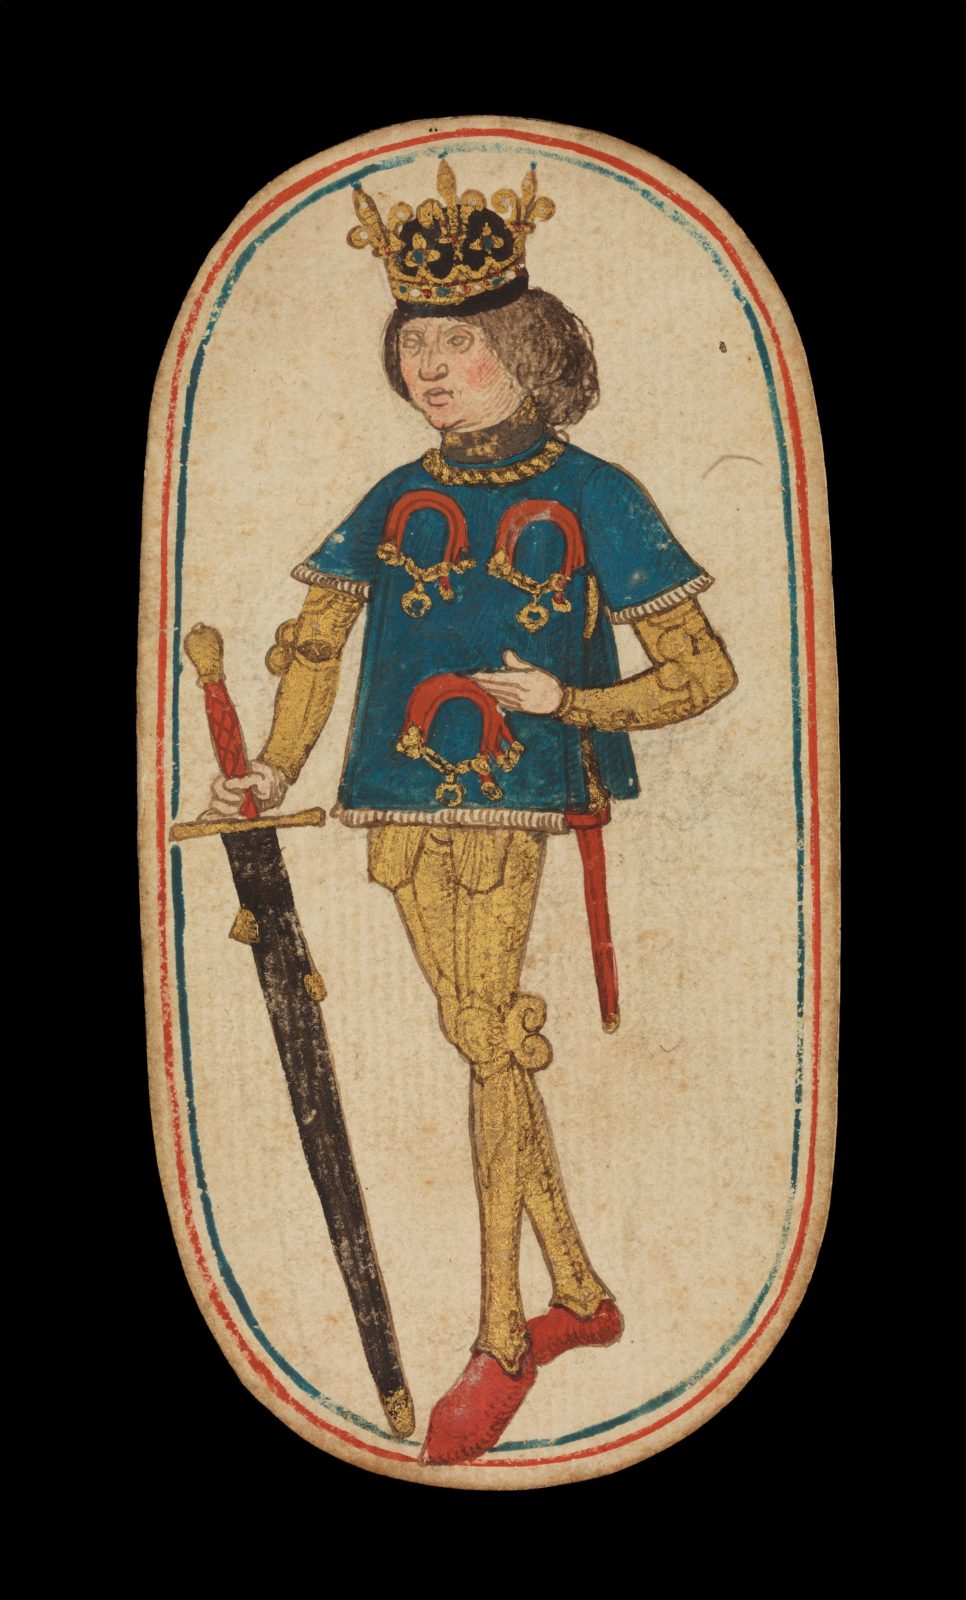 King of Collars, from The Cloisters Playing Cards